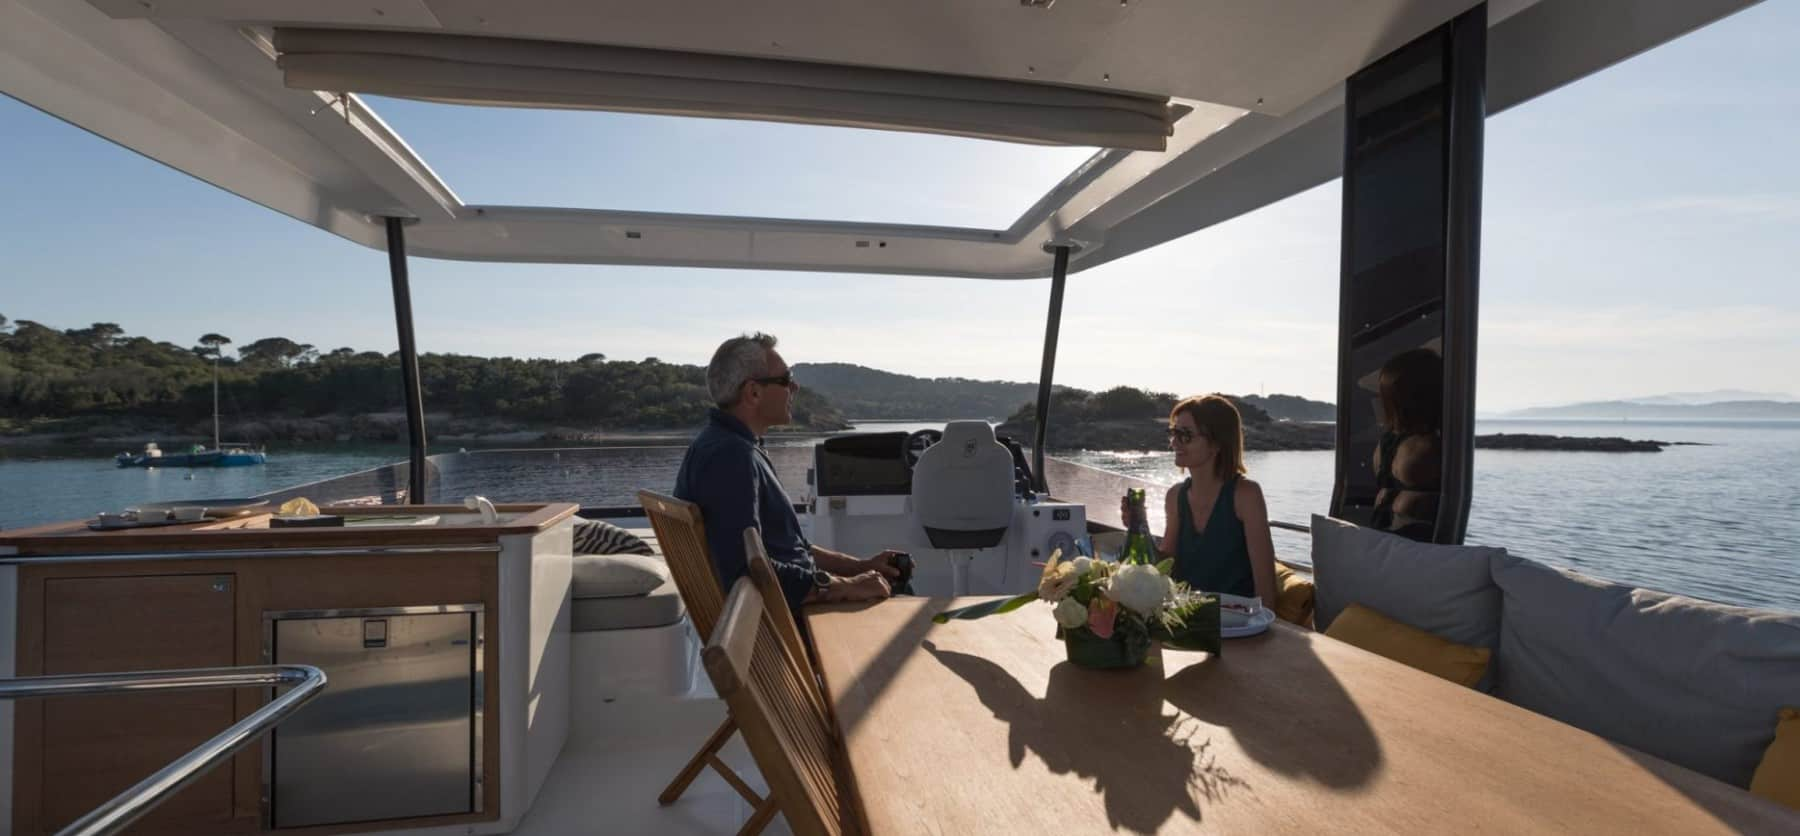 A man and a woman having a conversation on the flybridge of the Fountaine Pajot Motor Yacht 44 with tropical shores and the sun in the background